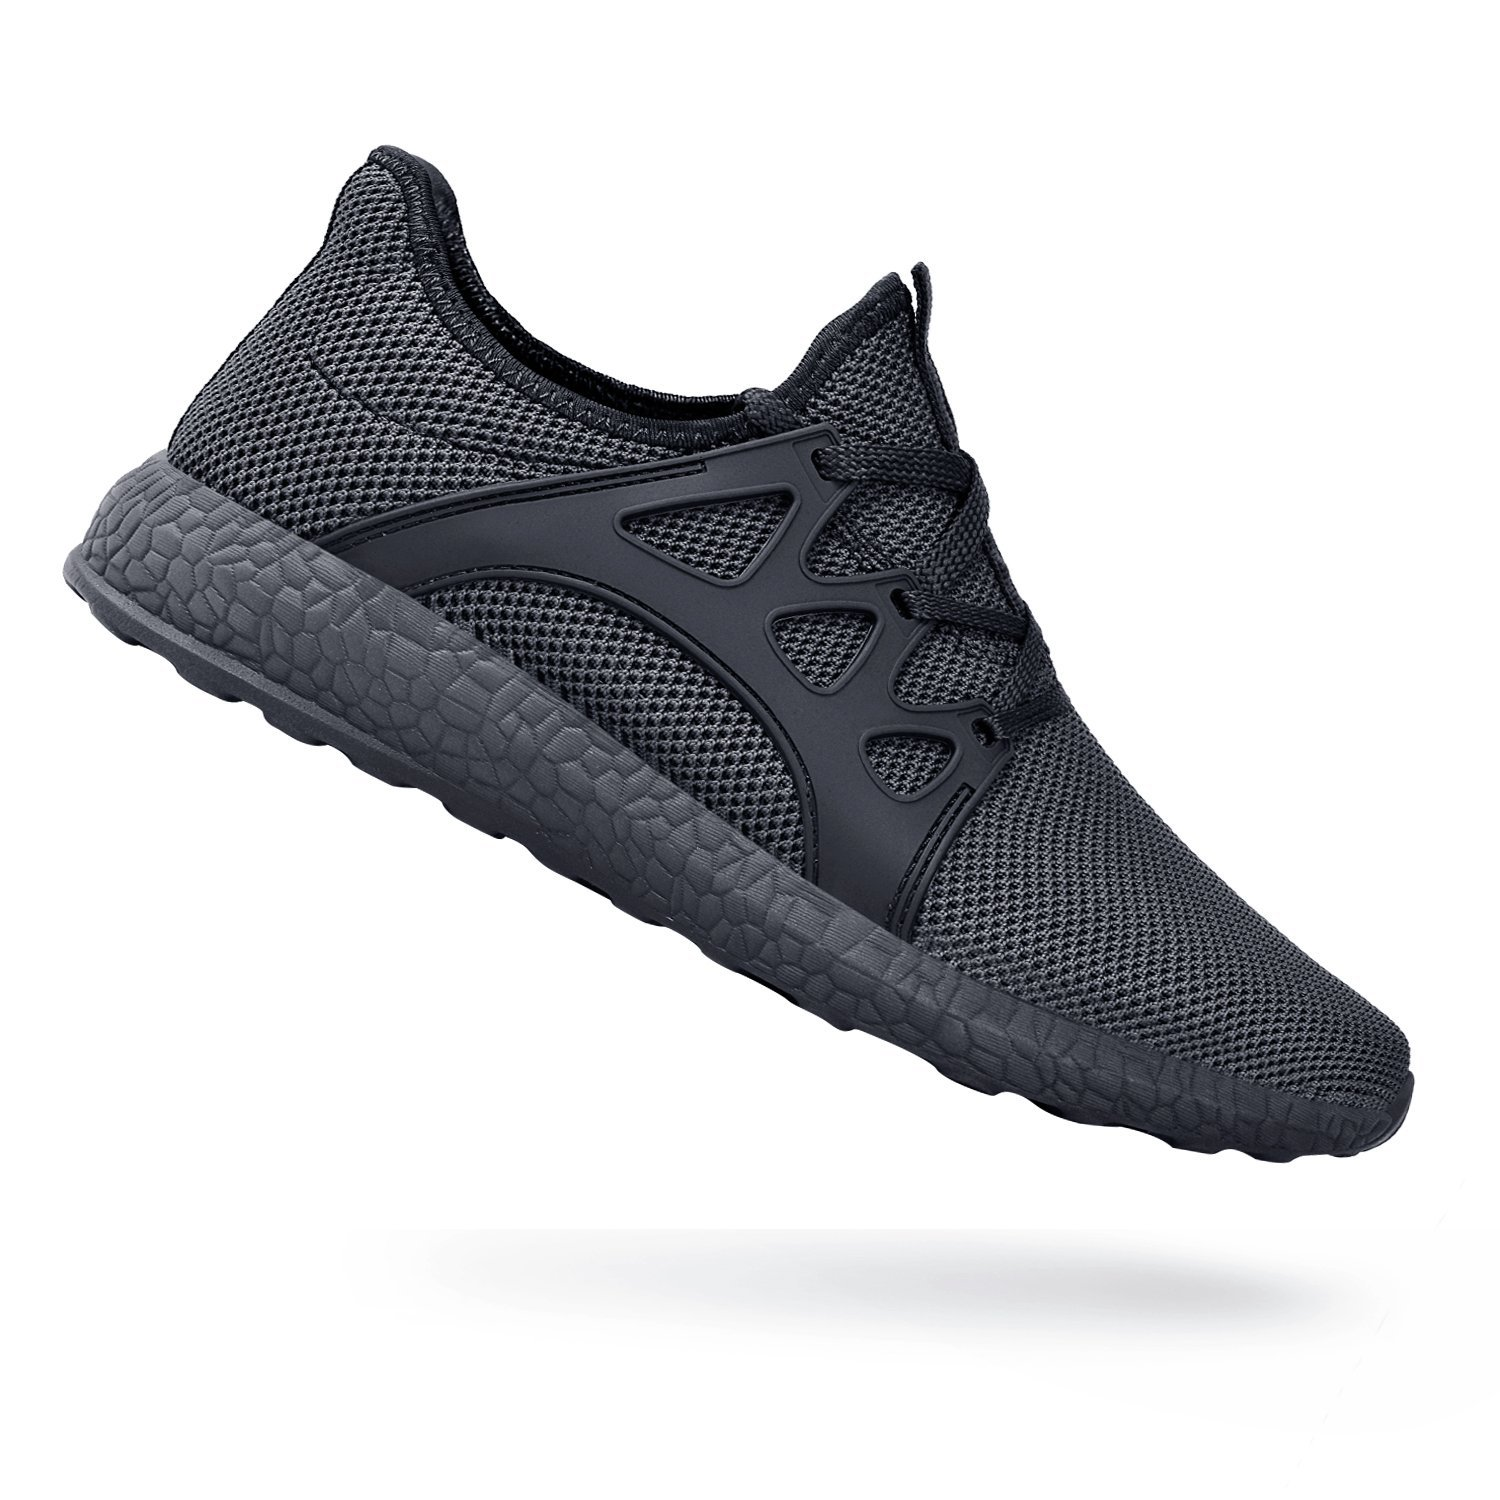 Men/Women Feetmat Womens Fashion Sneakers Ultra Lightweight Breathable Mesh Mesh Mesh Athletic Running Shoes Promotion auction Personalization trend BR9467 366c75